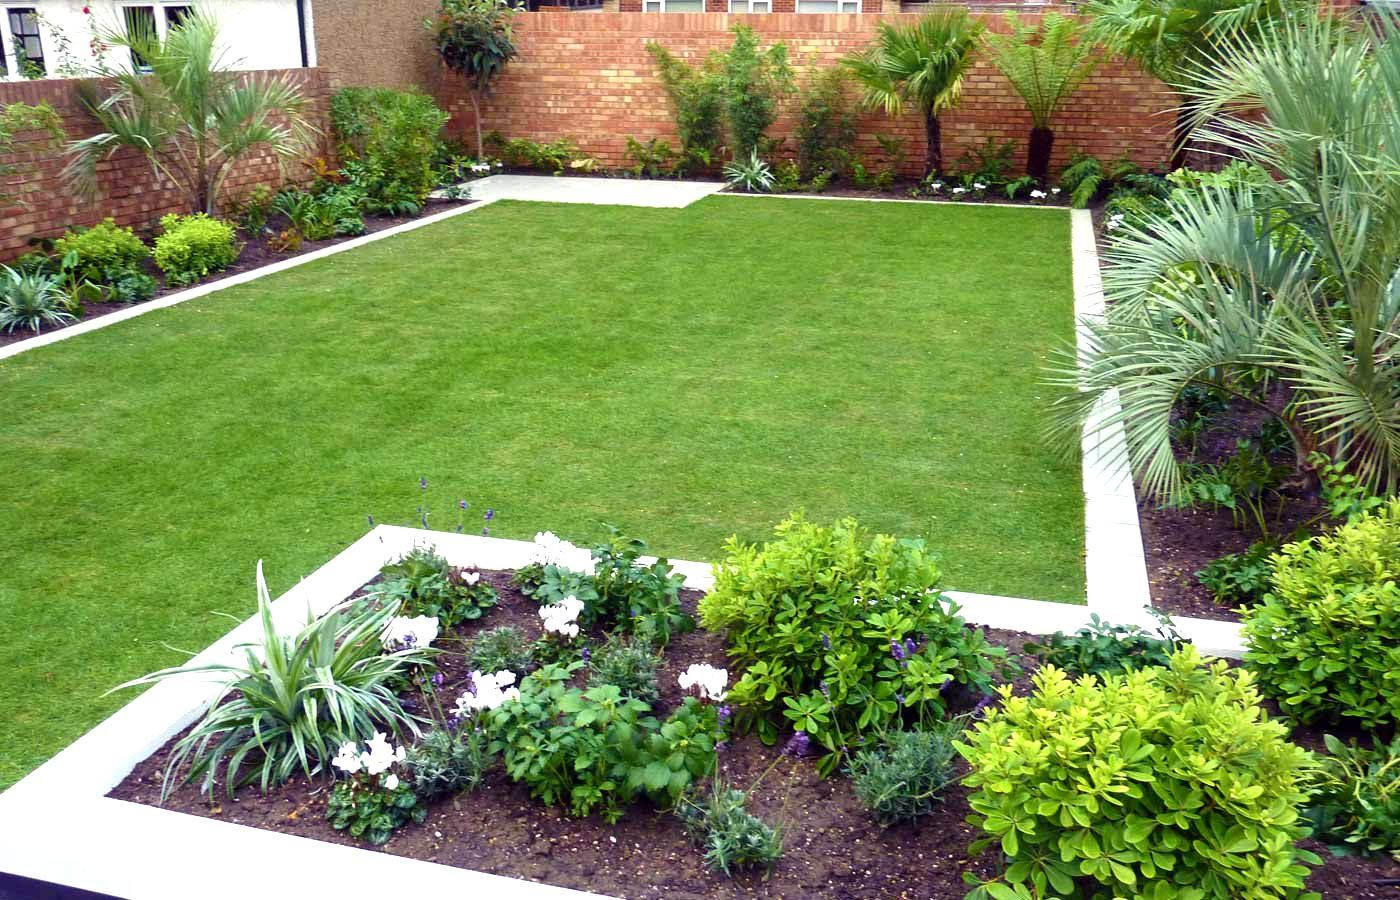 Simple garden designs no fret small garden design for Simple small backyard ideas